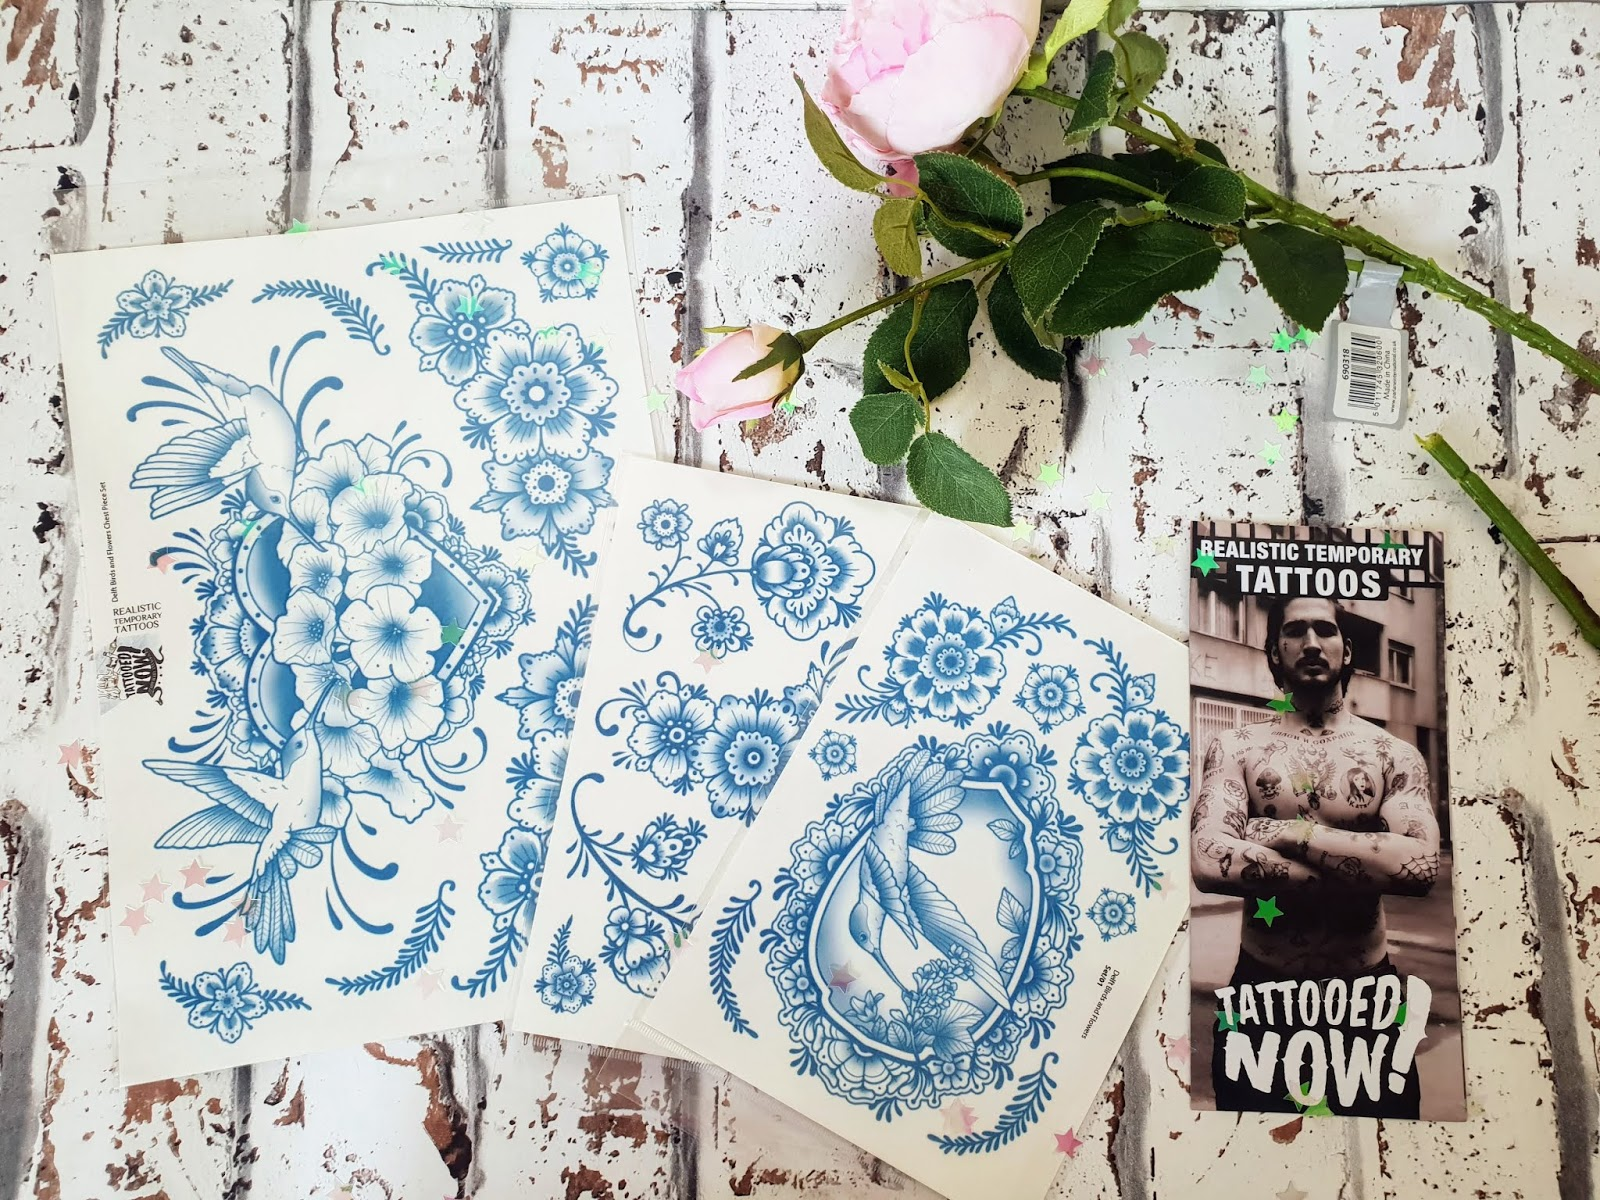 tattooed now temporary realistic tattoos review